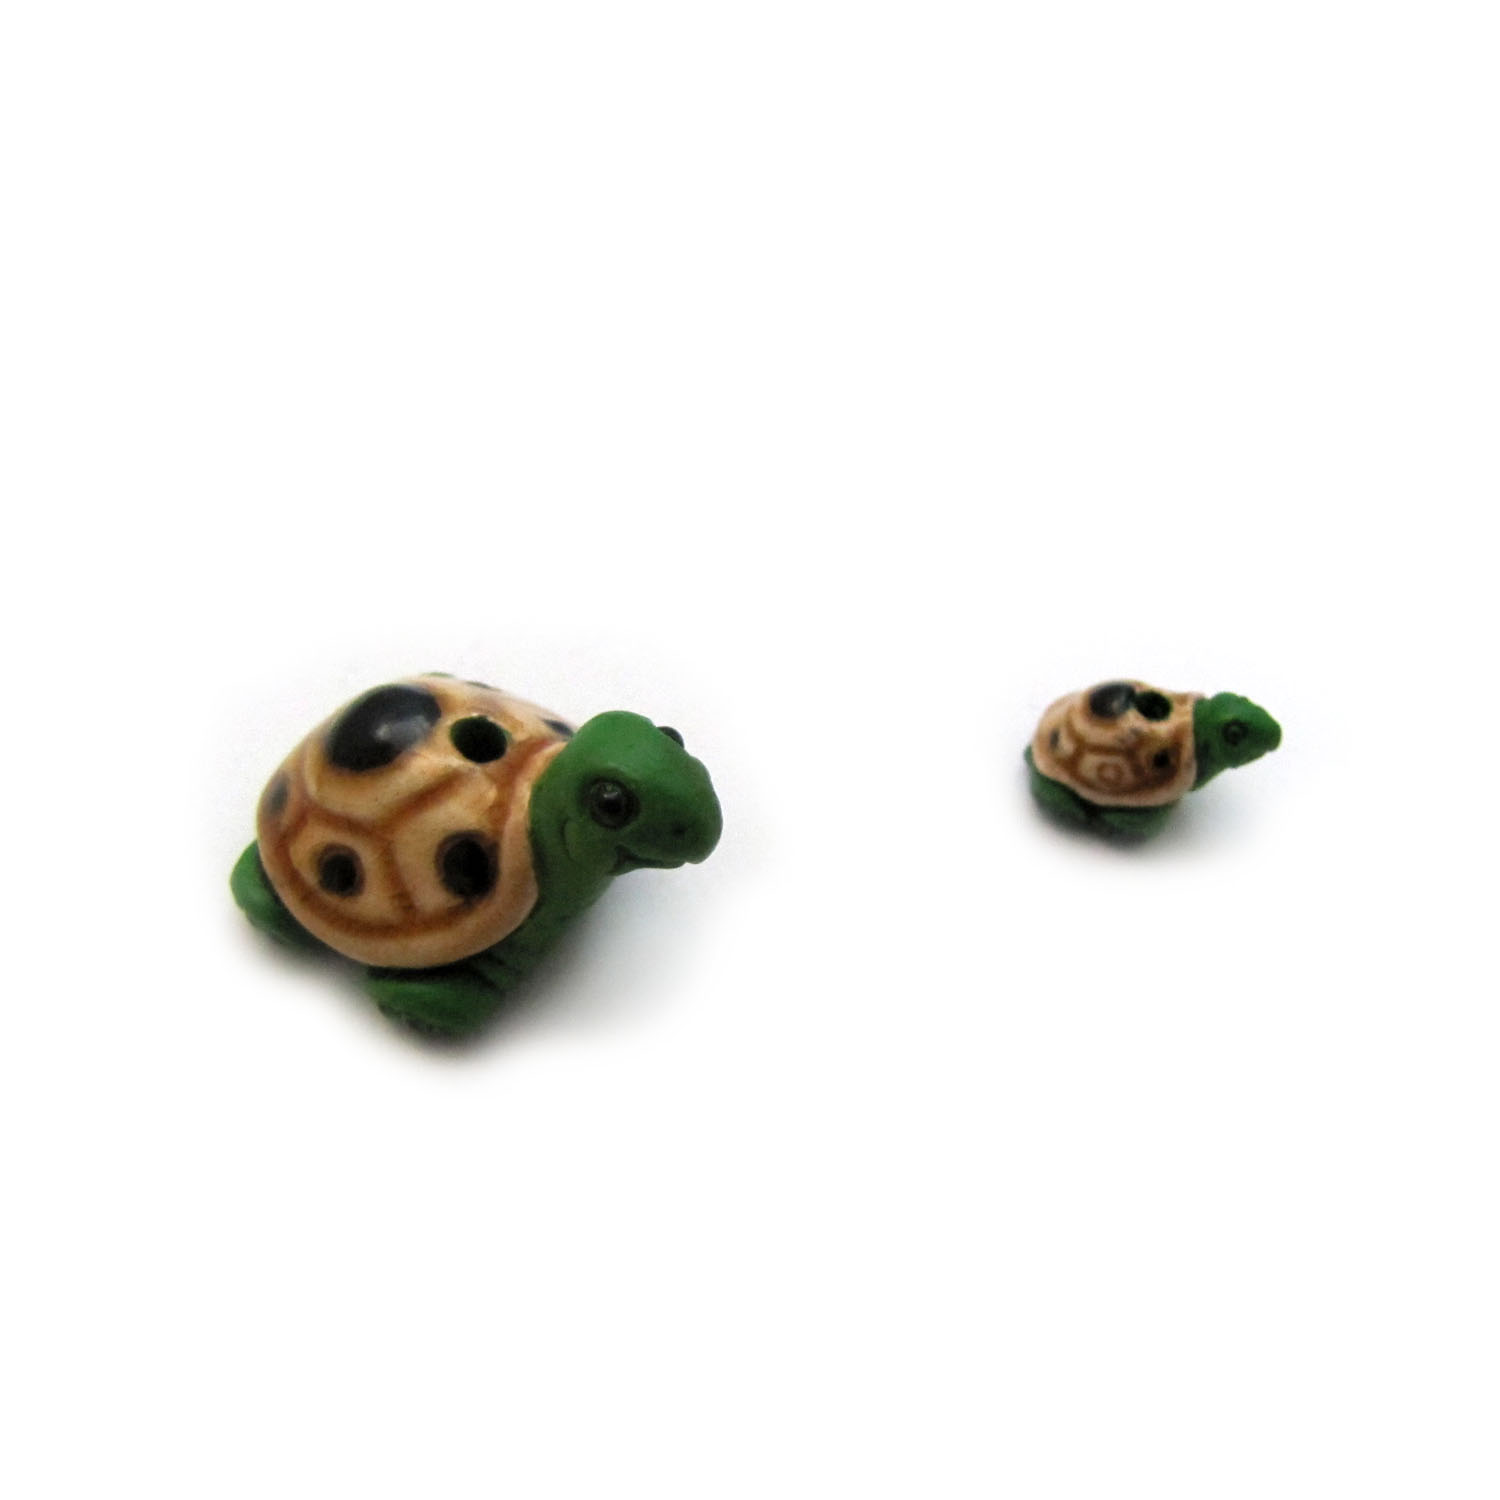 Green Turtle ceramic beads large and small green turtle side view